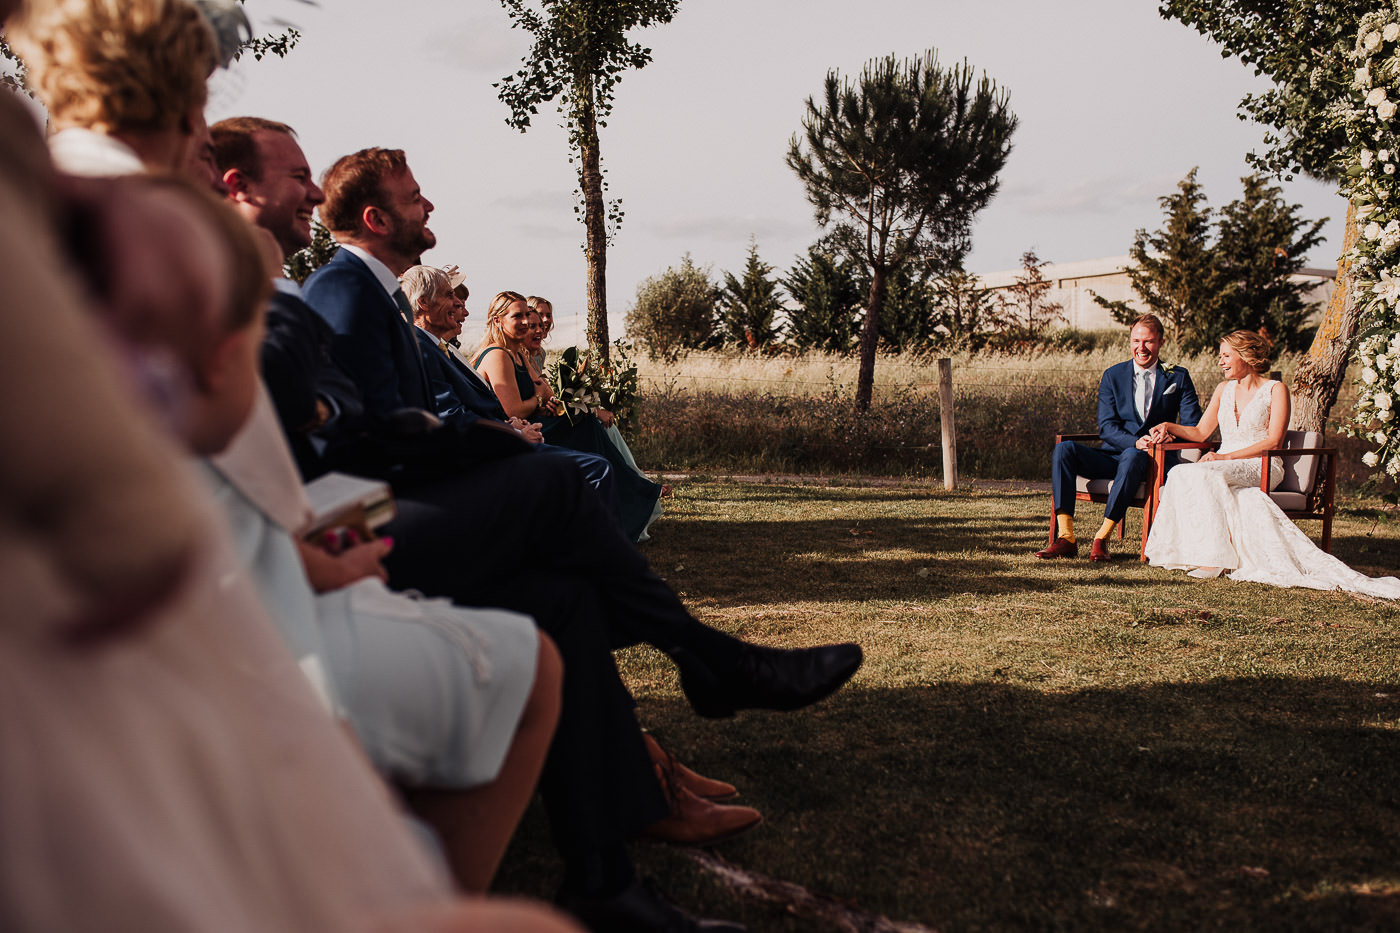 bride-groom_land-vineyards-resort_alentejo_montemor-o-novo_documentary-wedding-photography_portugal-wedding_